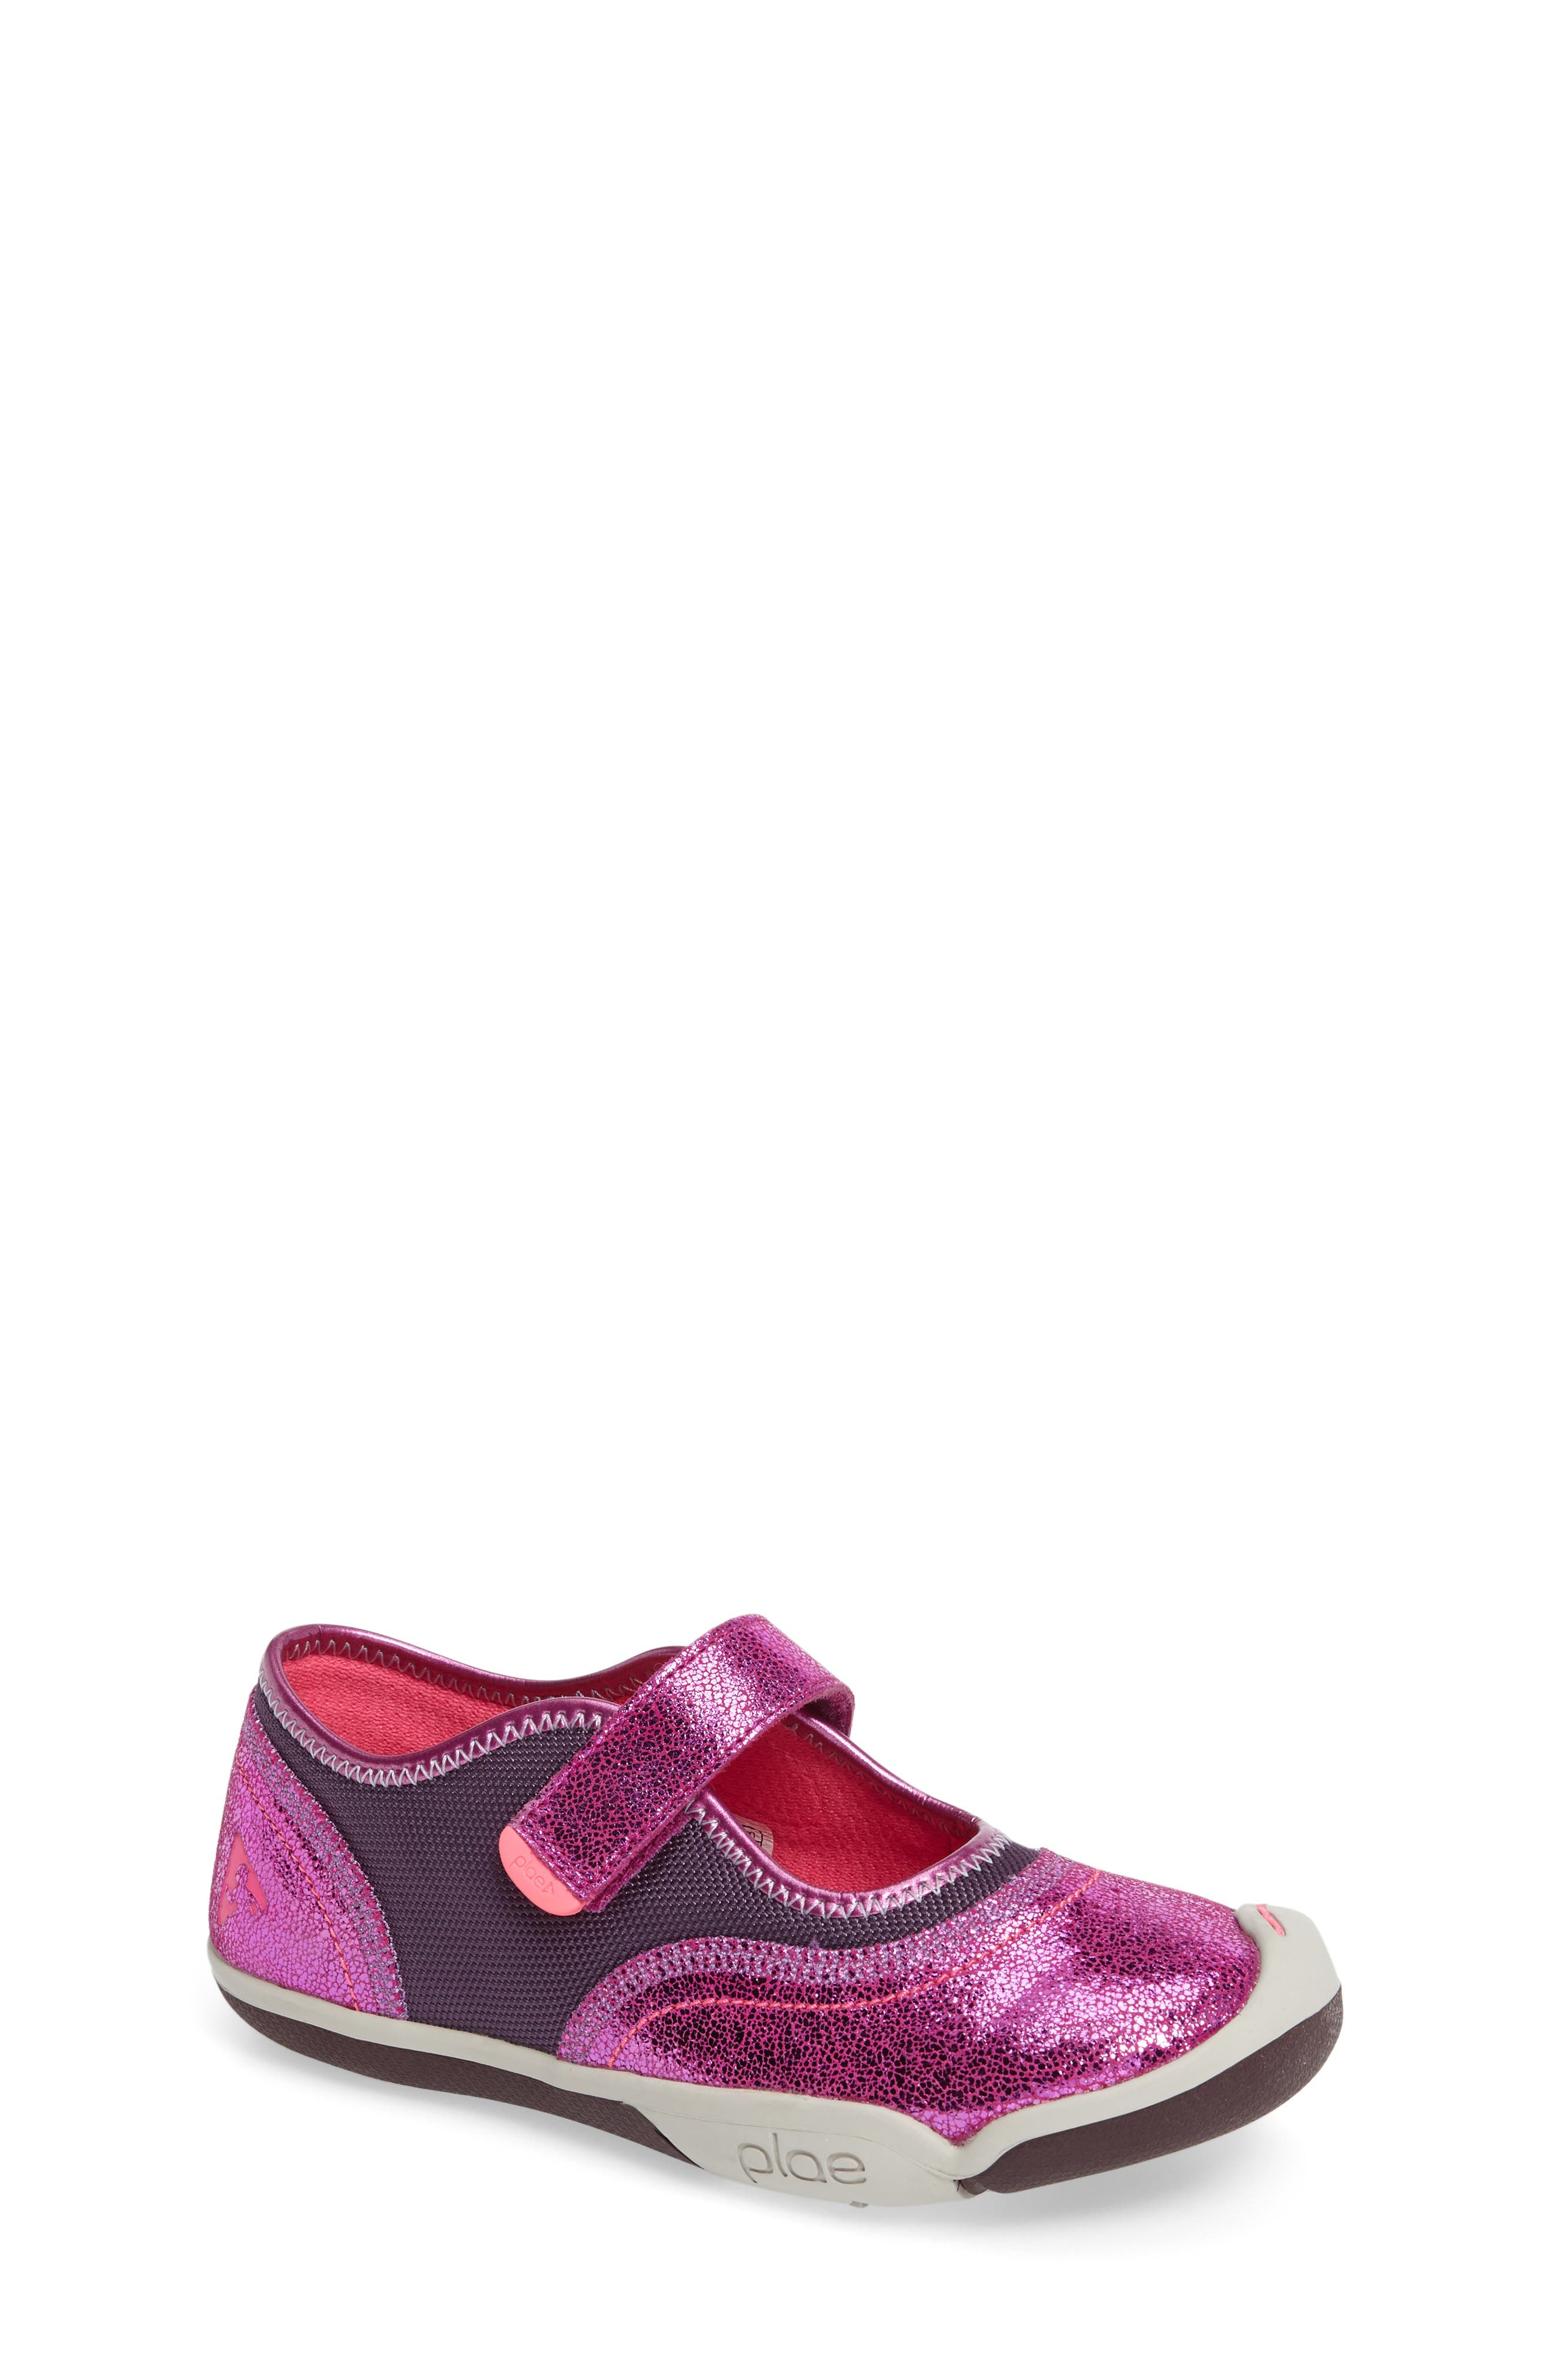 Emme Mary Jane,                             Main thumbnail 1, color,                             Viola Metallic Leather